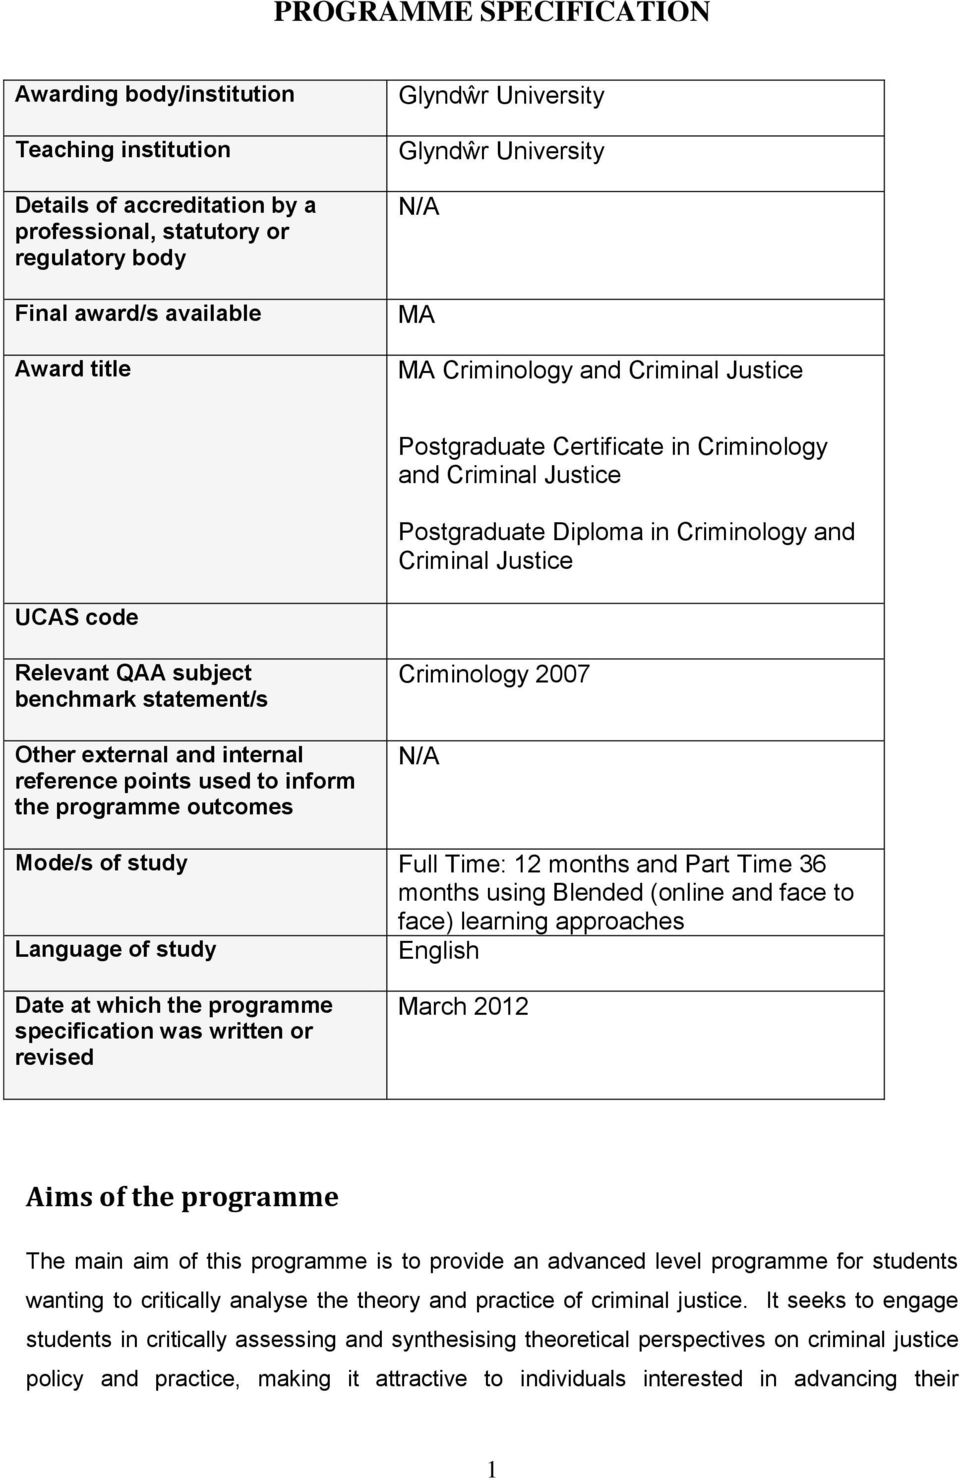 QAA subject benchmark statement/s Other external and internal reference points used to inform the programme outcomes Criminology 2007 N/A Mode/s of study Full Time: 12 months and Part Time 36 months